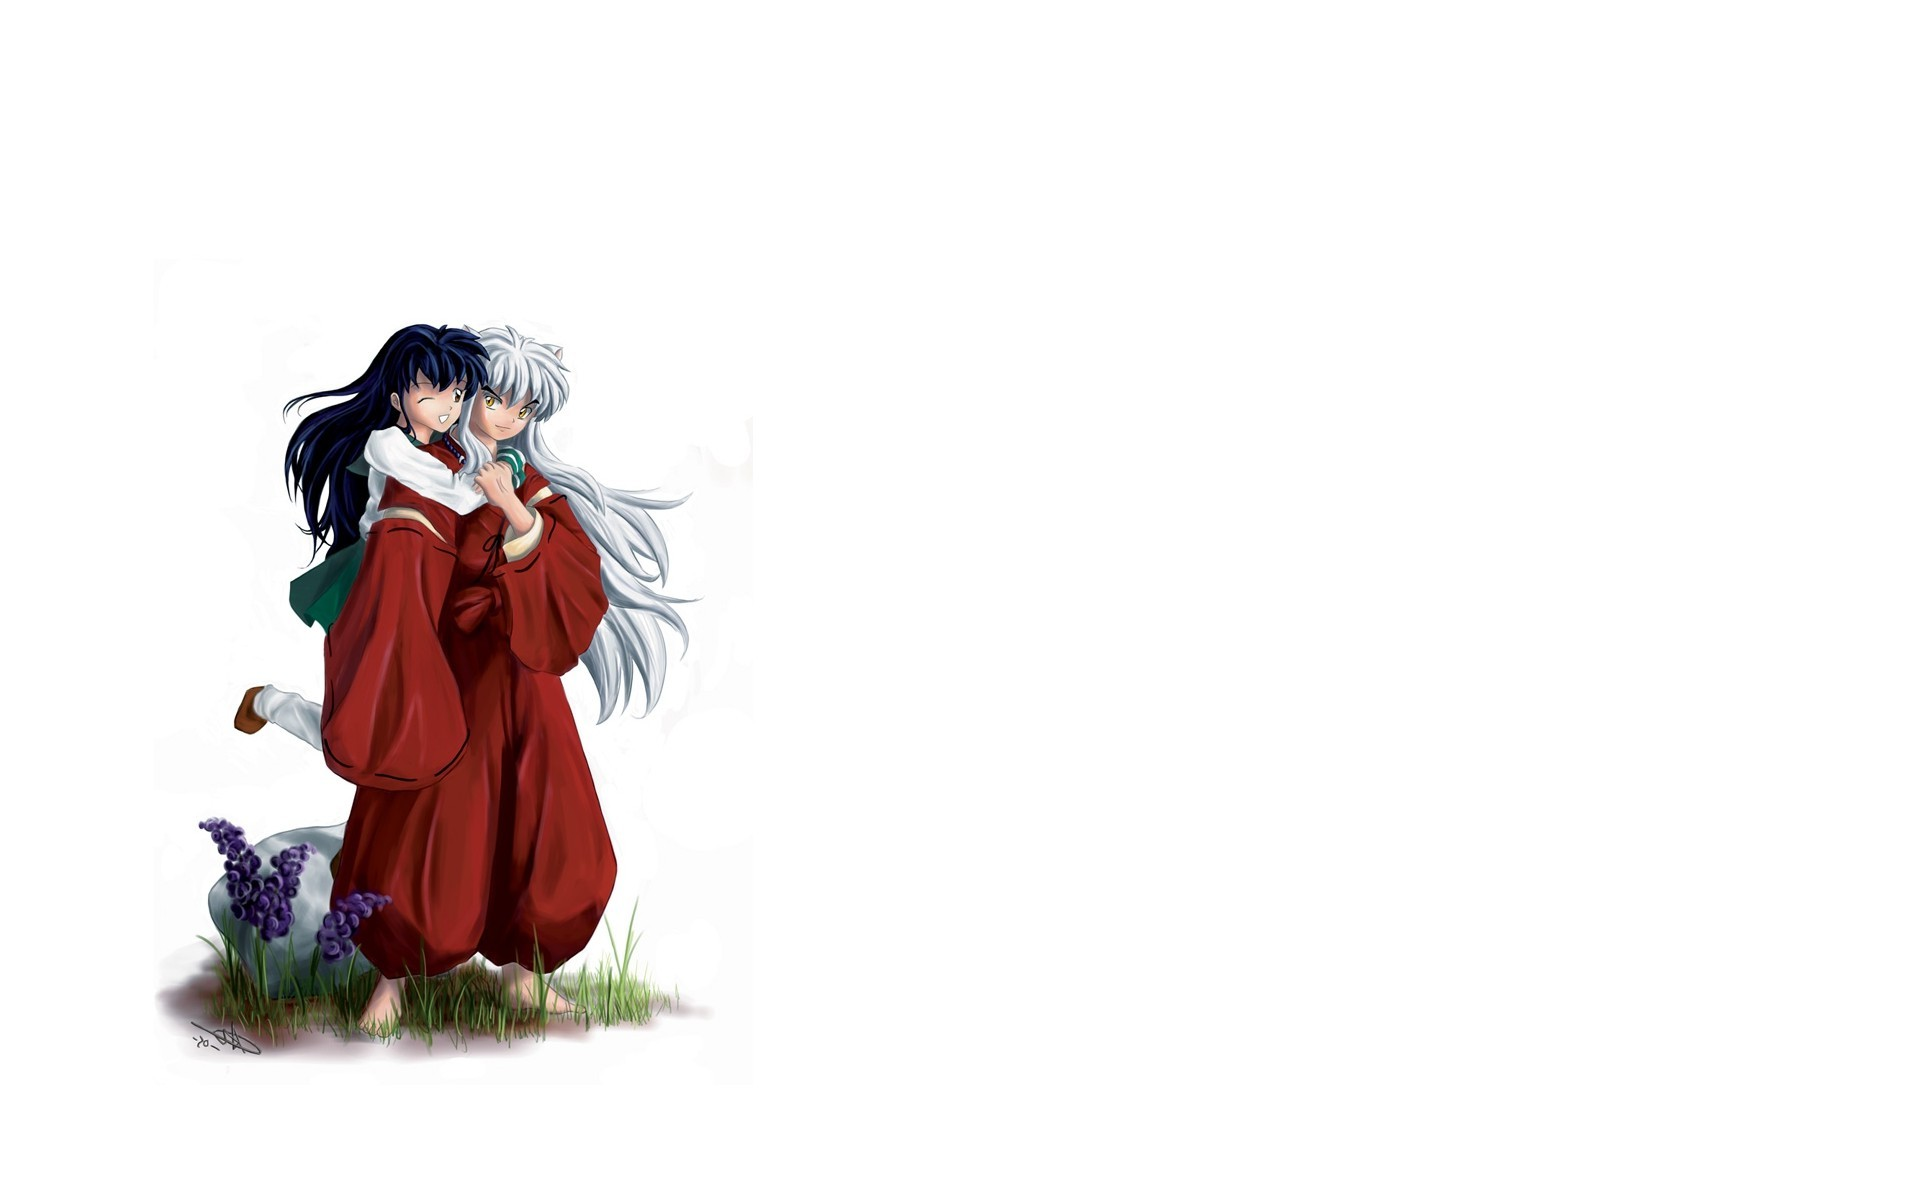 1920x1200 Inuyasha Girl Ears Scream Kick Sword Photo InuYasha Wallpaper